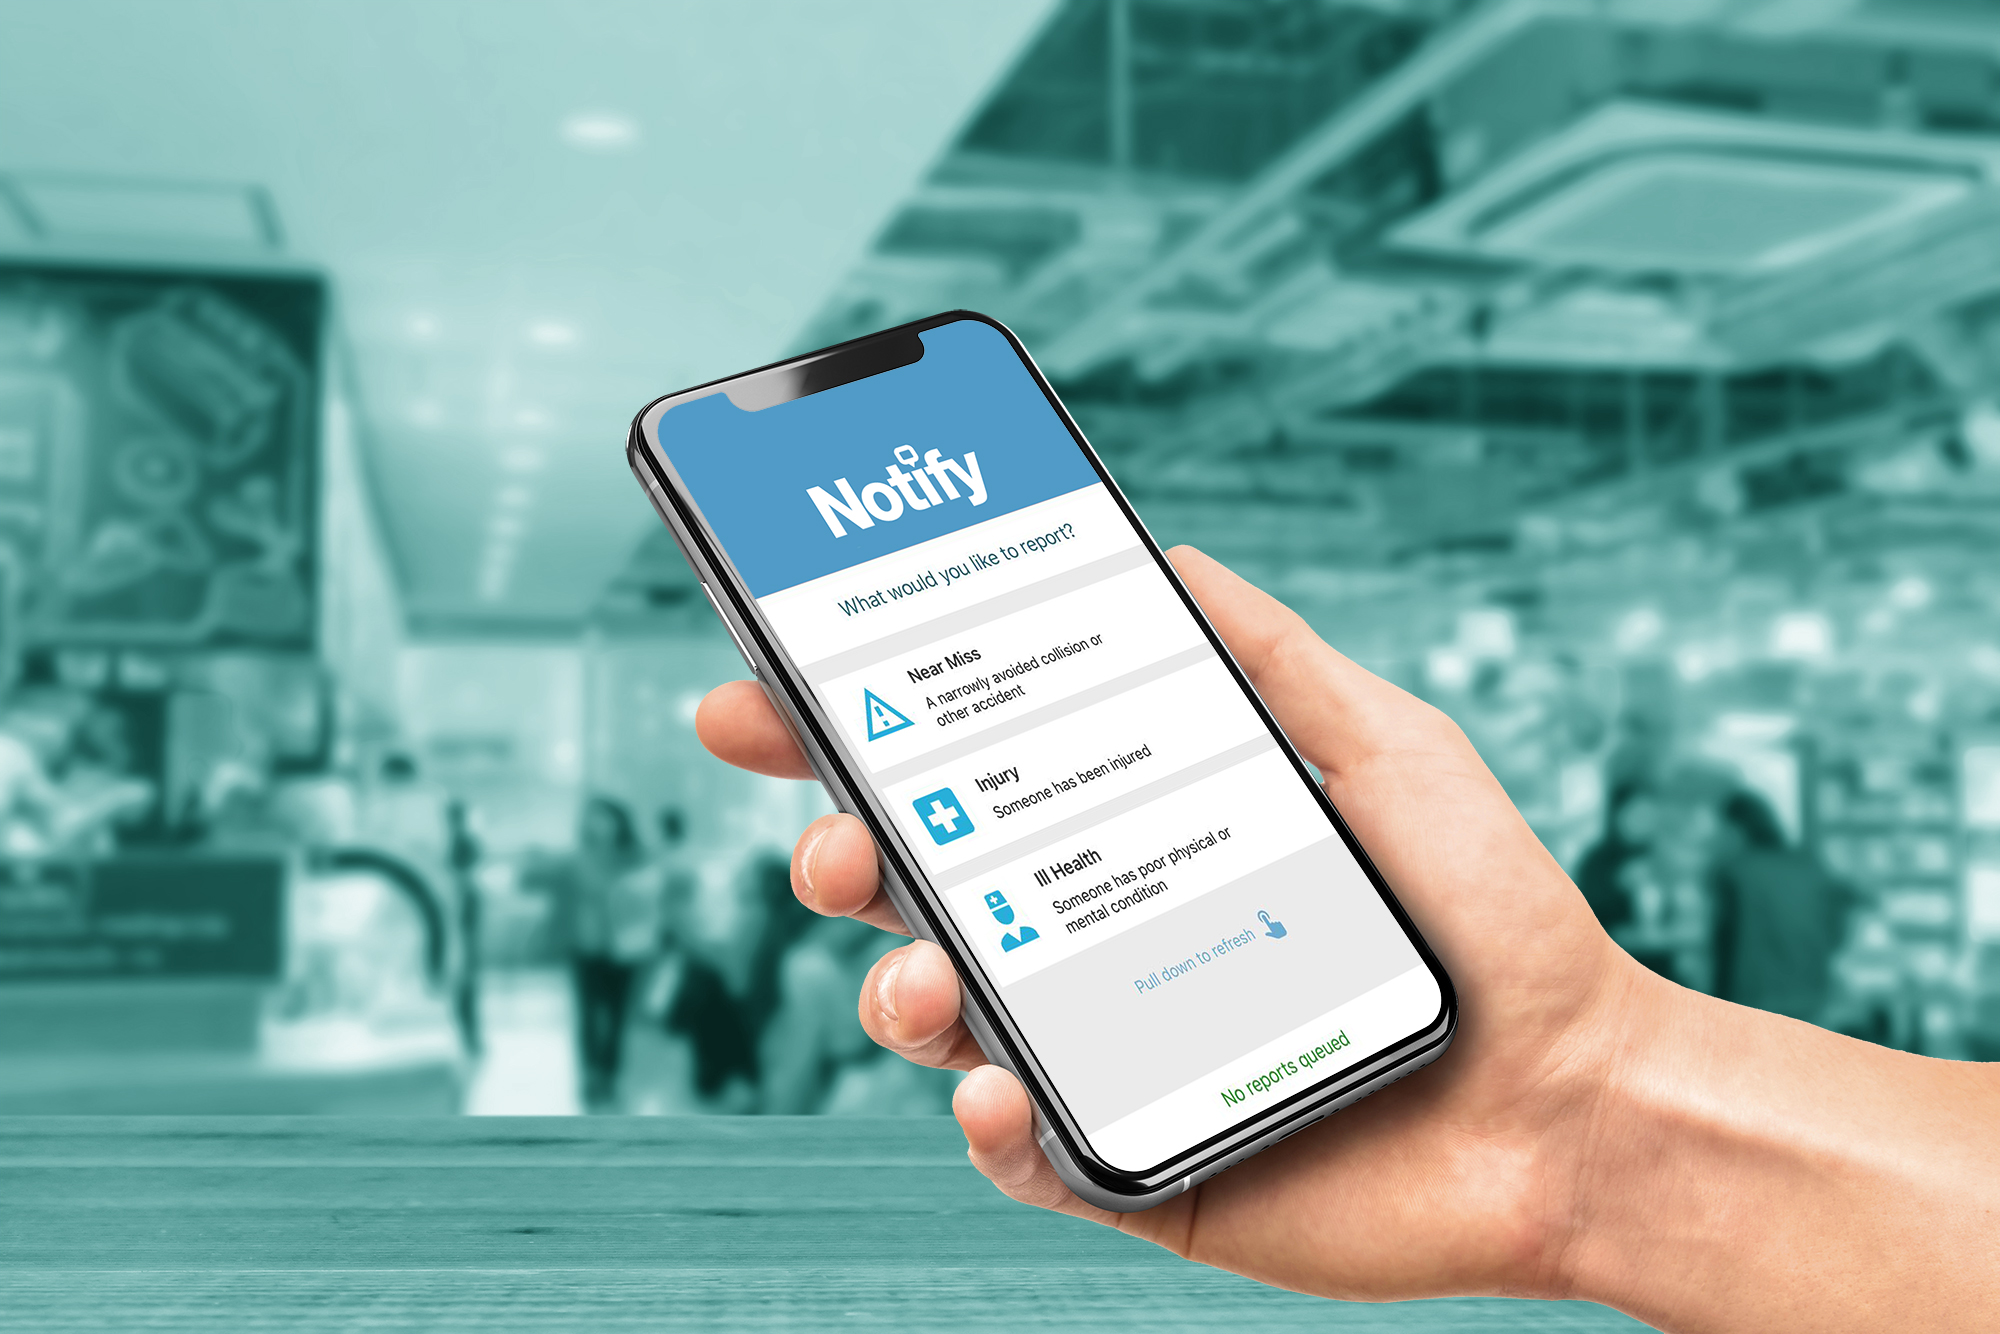 You can now get a FREE Notify account